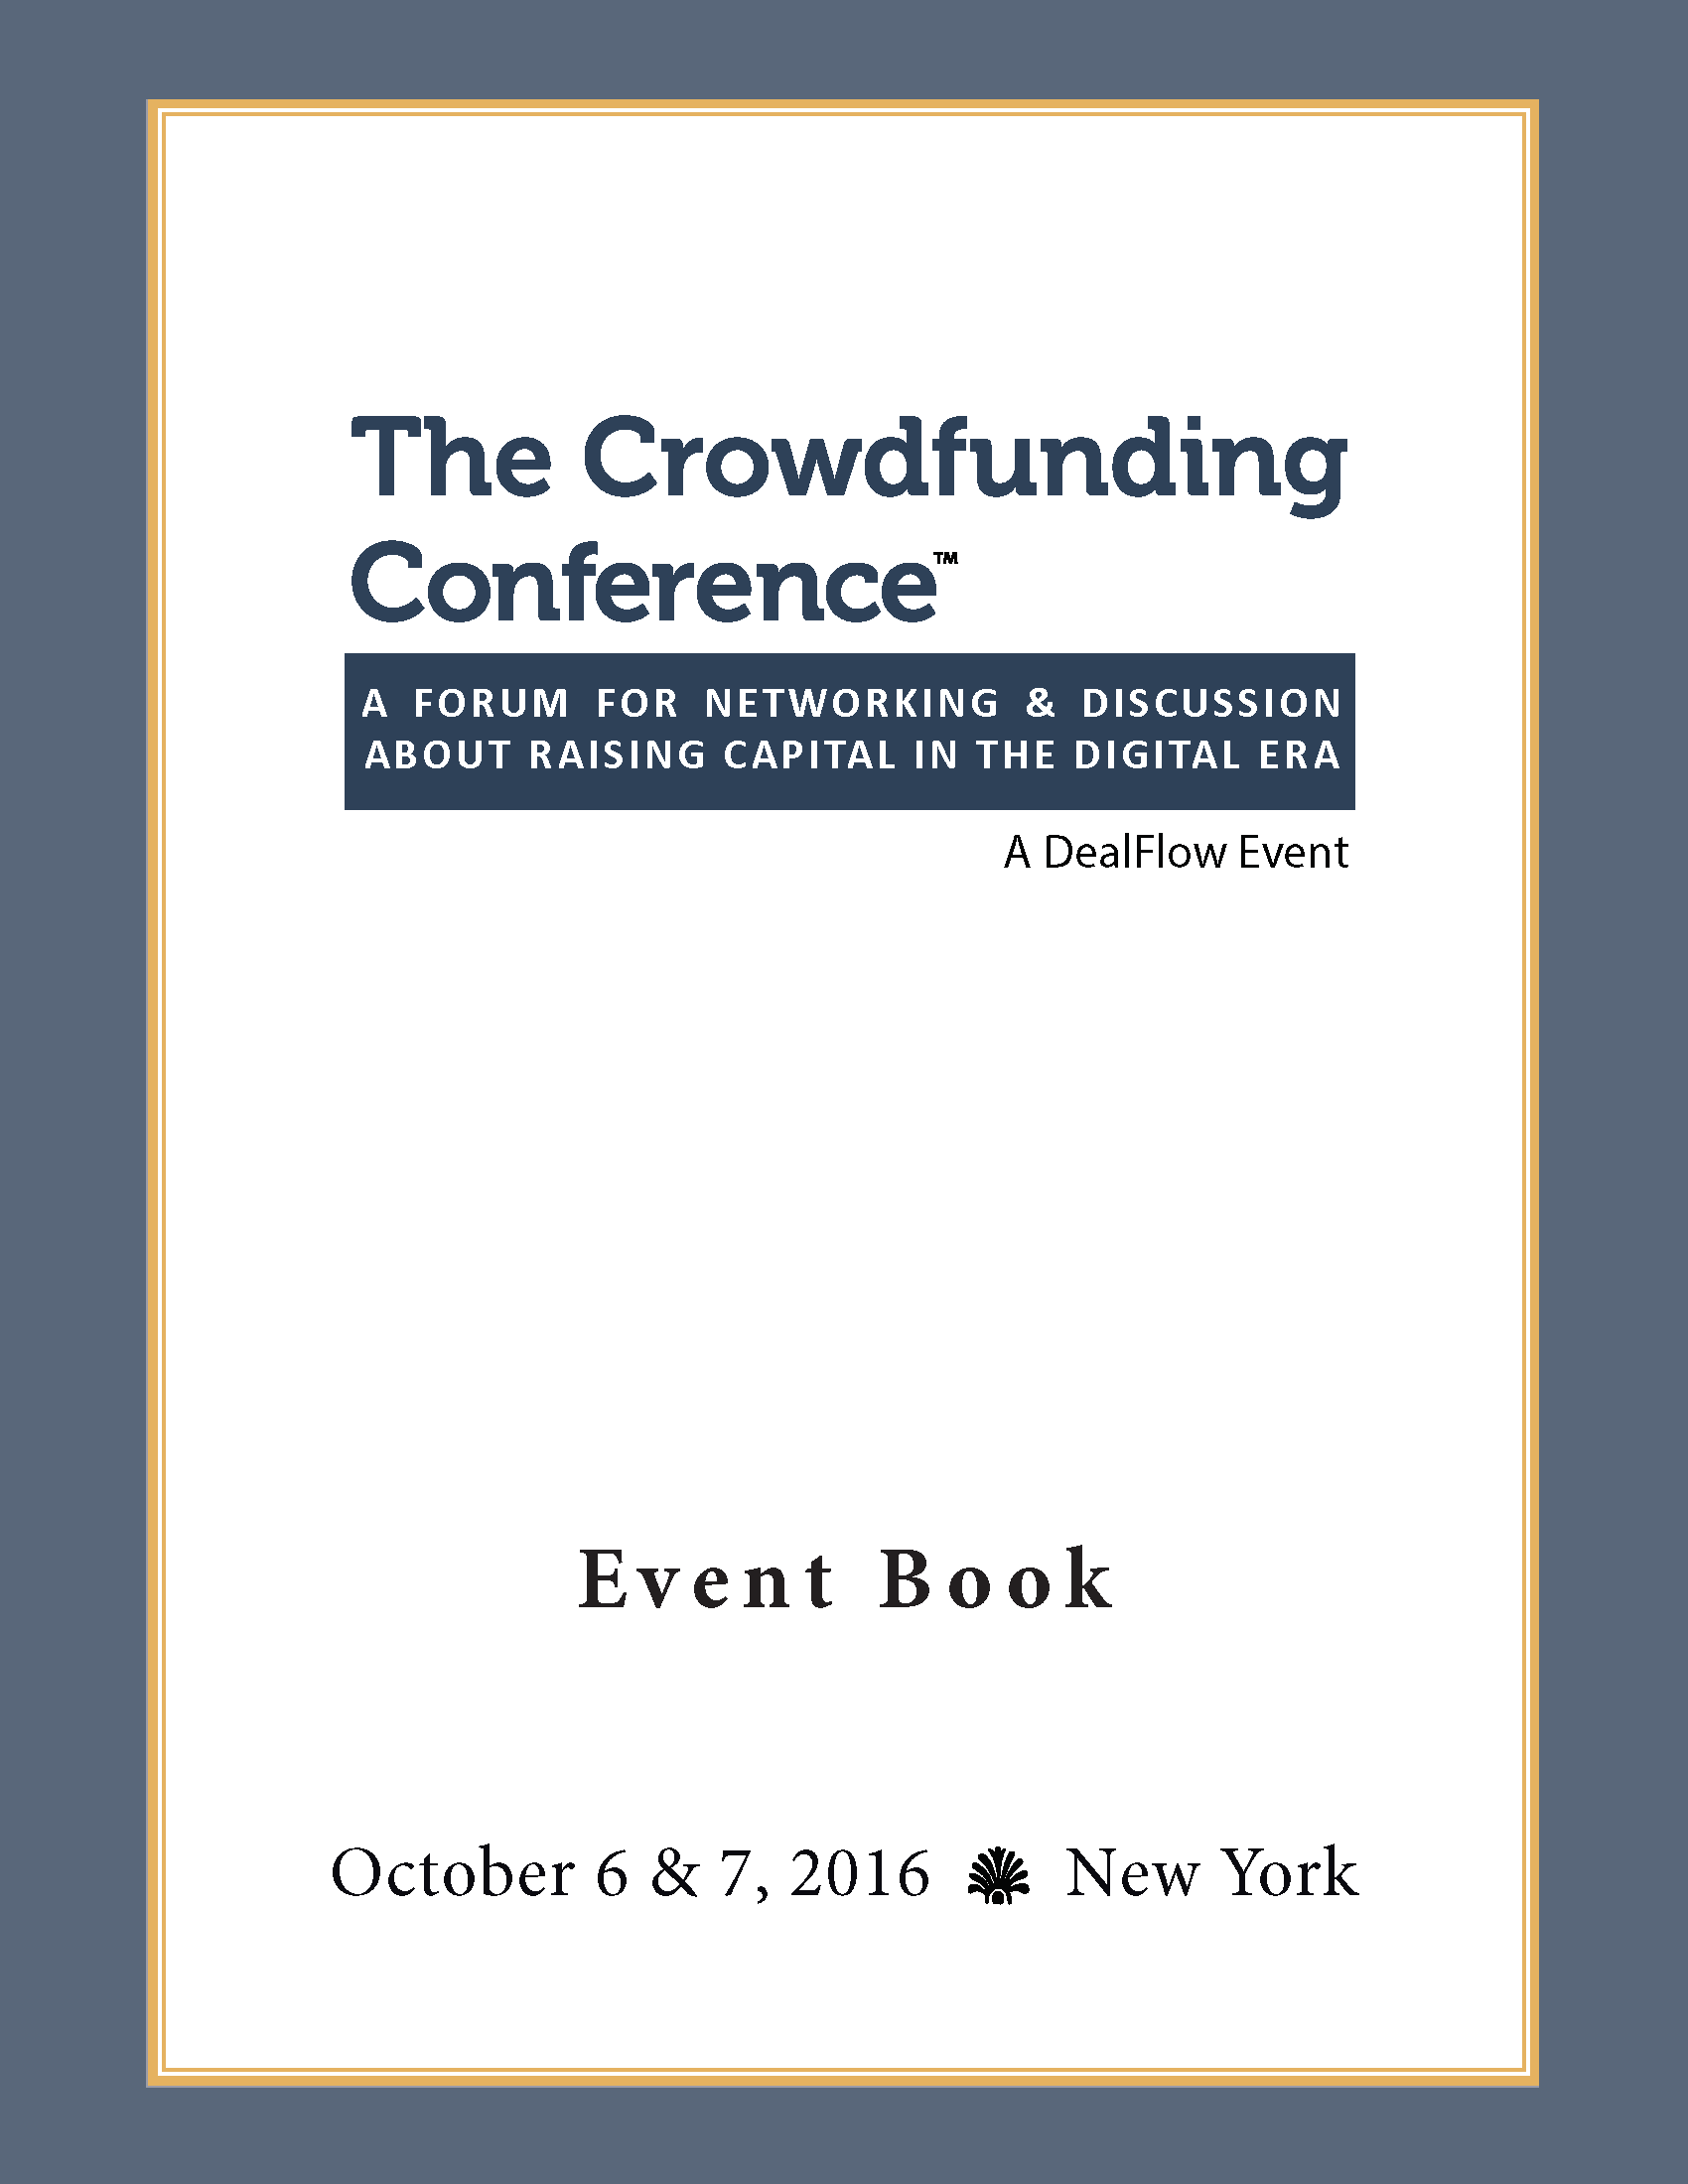 The Crowdfunding Conference